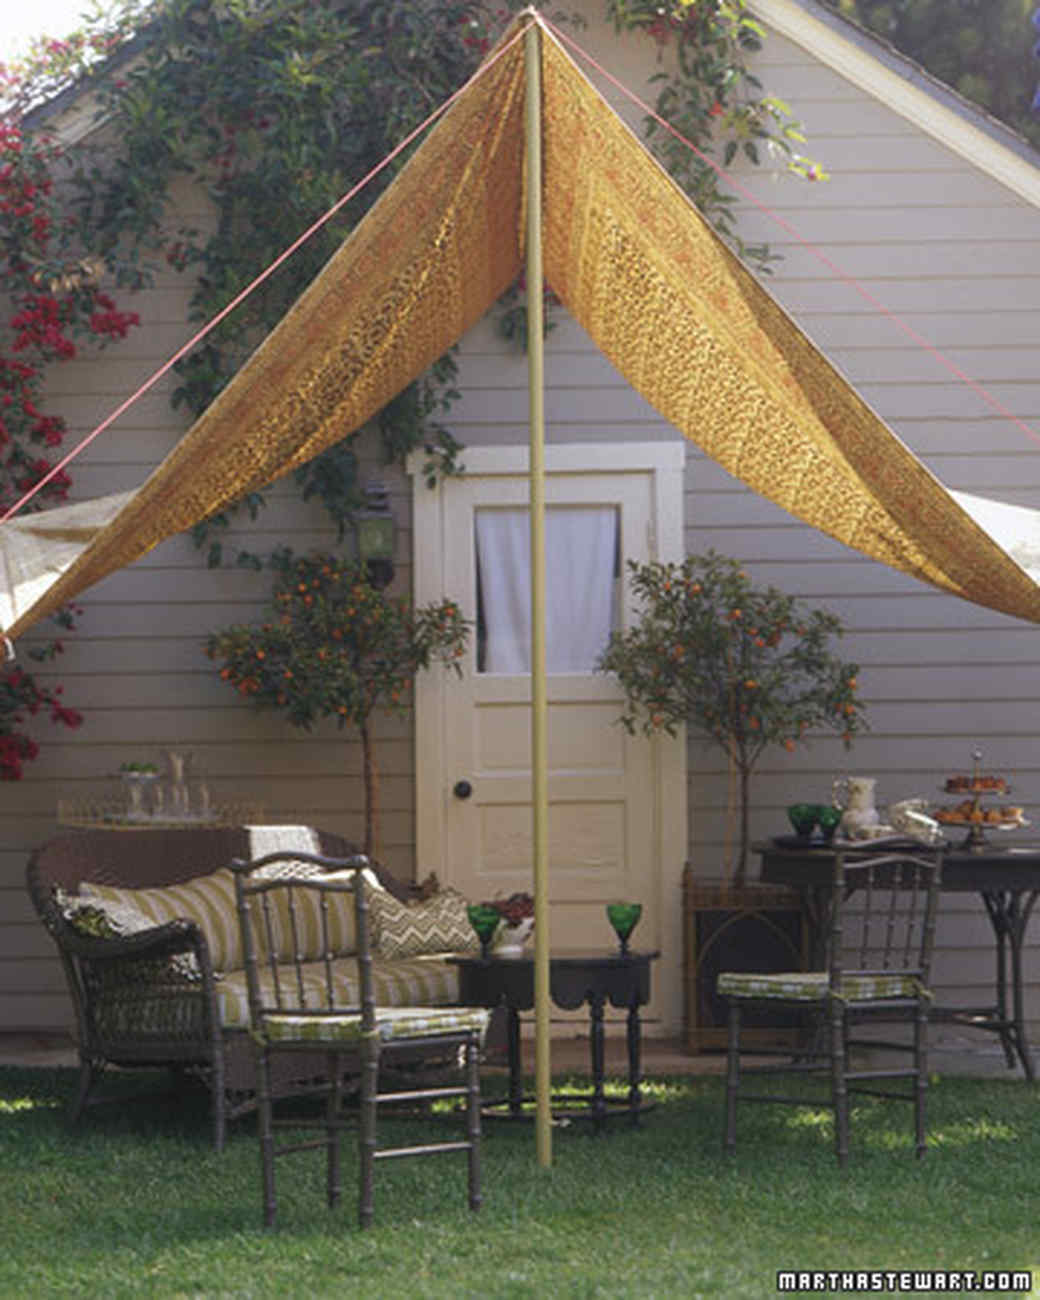 Introduction & A Slice of Shade: Creating Canopies | Martha Stewart